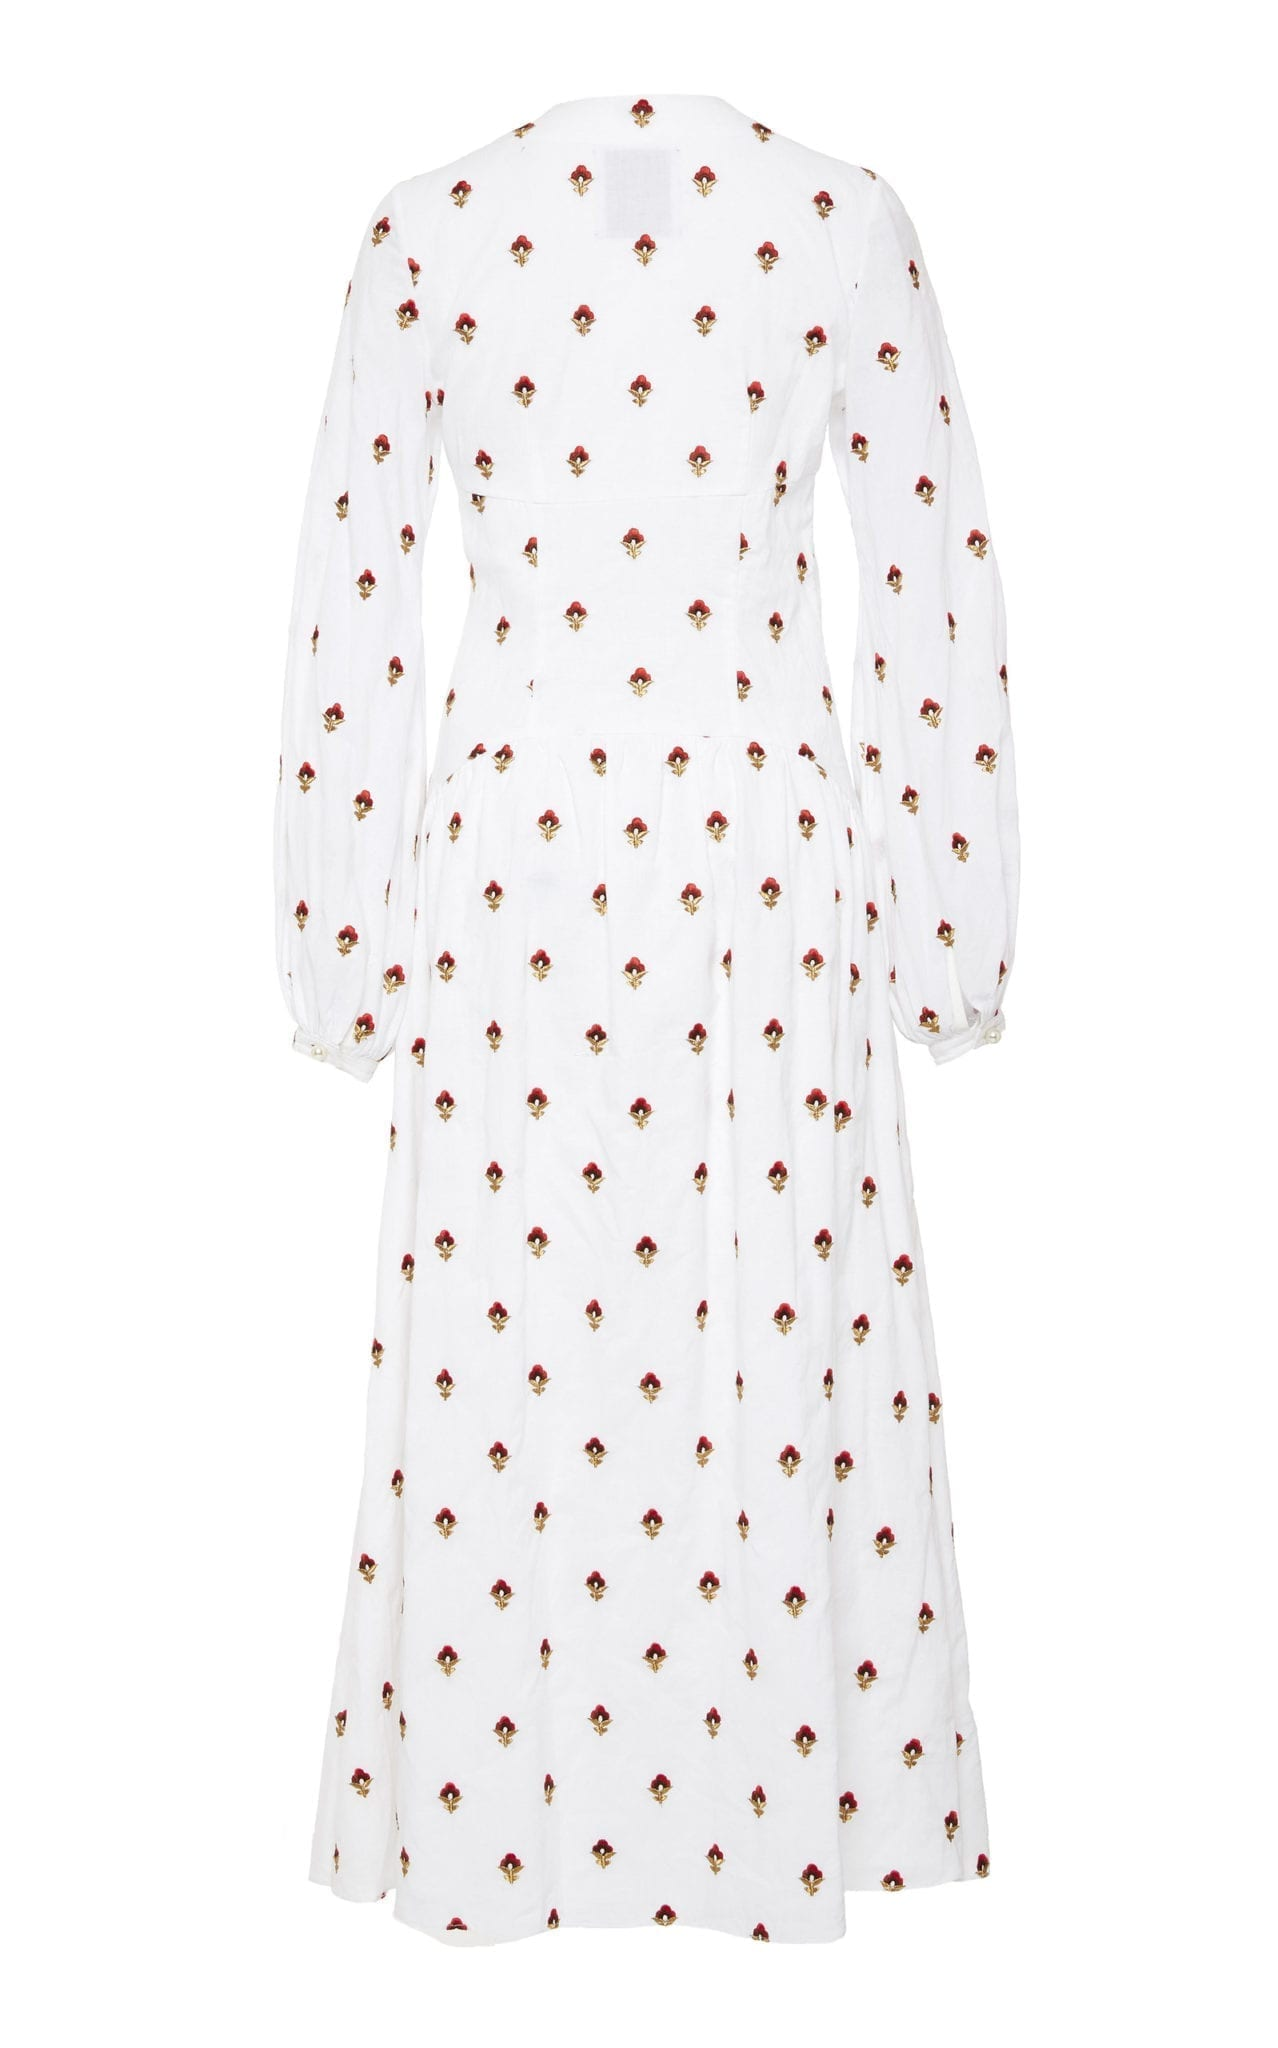 MARKARIAN M'O Exclusive Churchill Embroidered Cotton White Dress